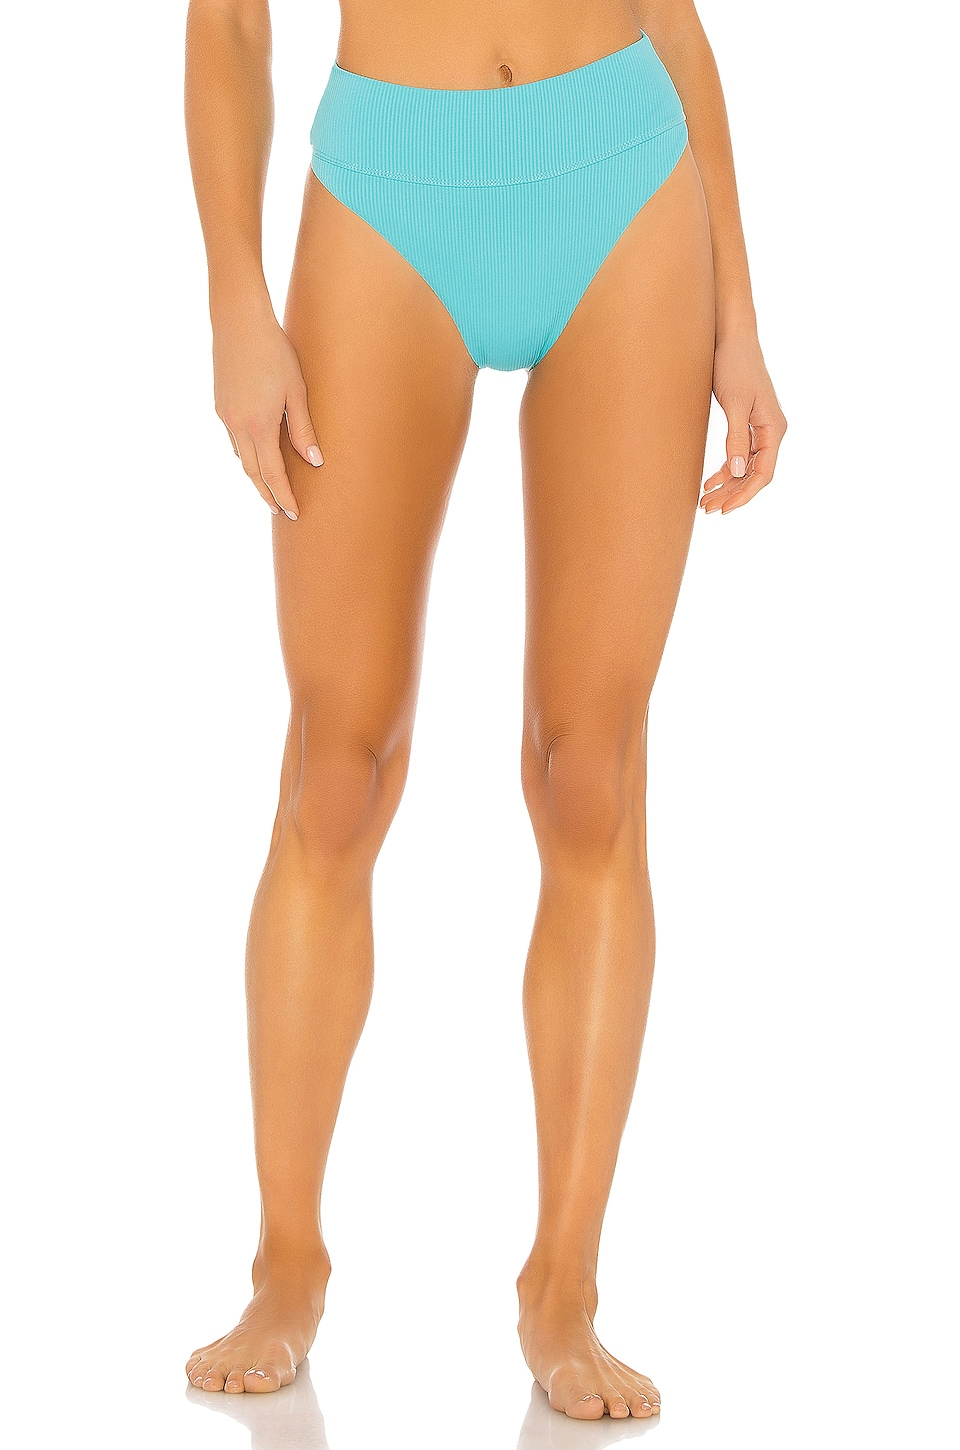 BEACH RIOT X REVOLVE Highway Bikini Bottom in Turquoise